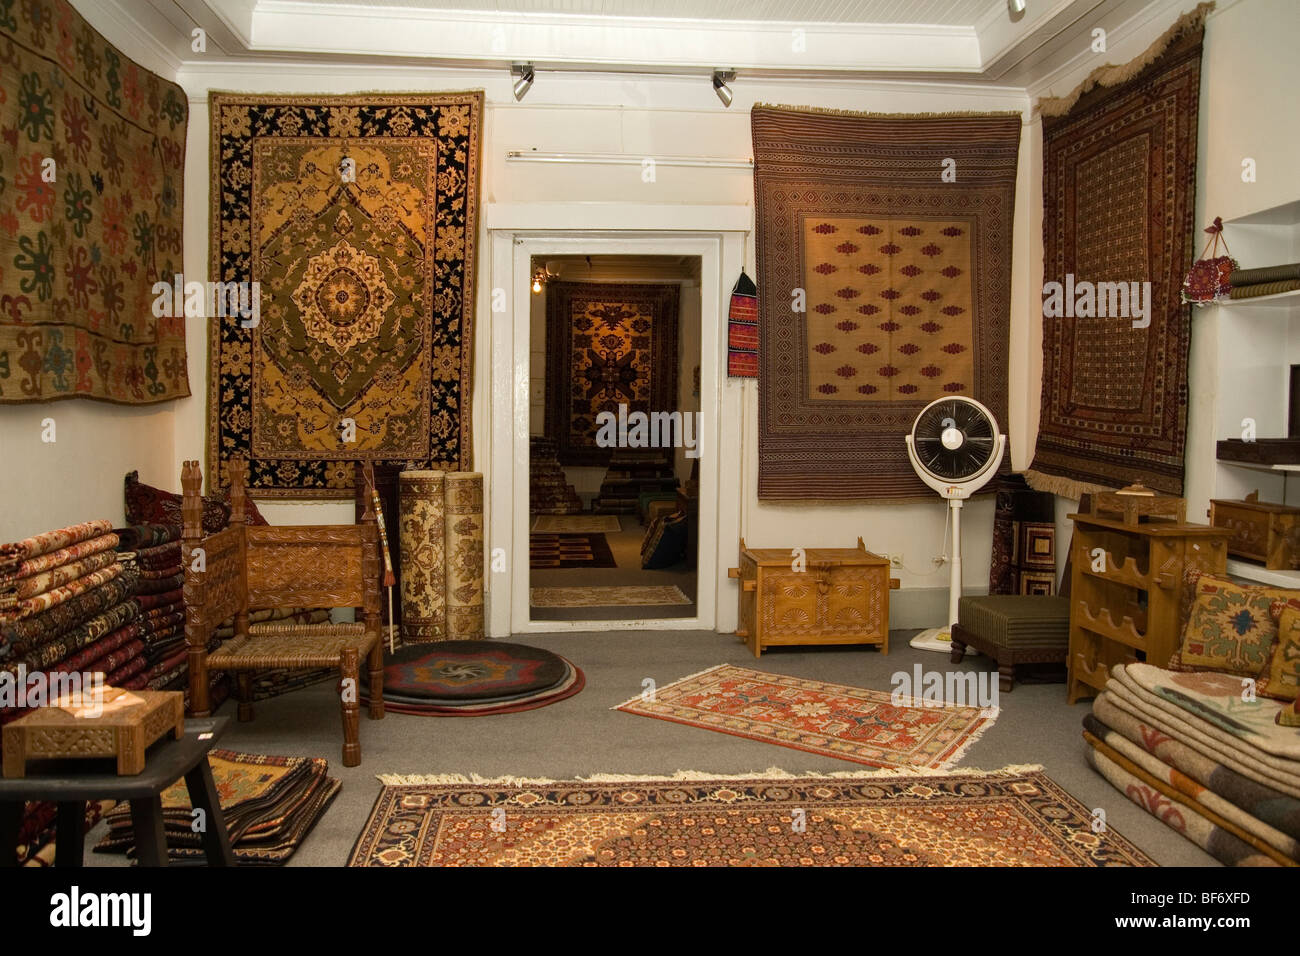 Designer Boutique Selling Interior Designs In Soft Furnishing And Textiles  In Kabul Afghanistan